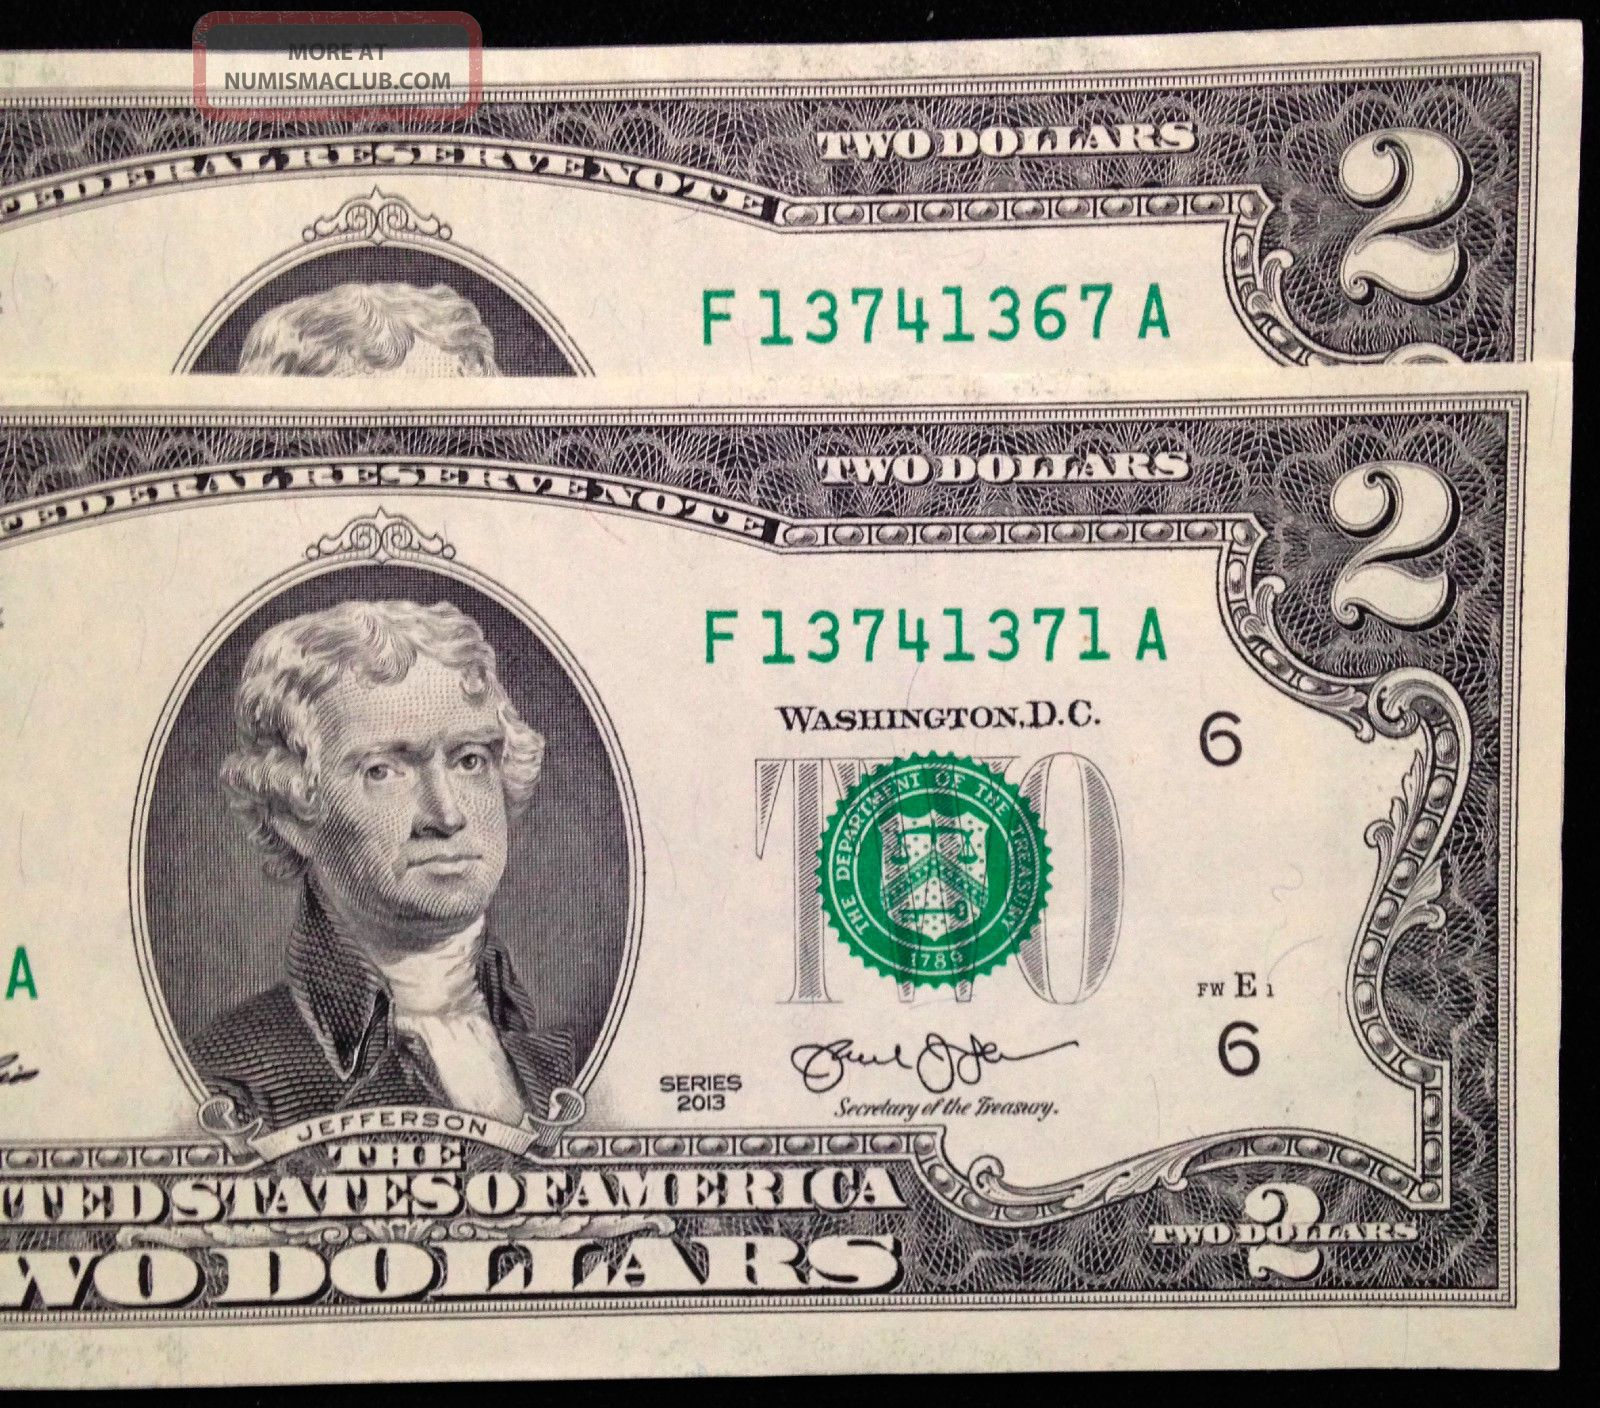 $2 Two Dollar Bills, Similar Cool Serial Numbers, Us Currency, Frb F